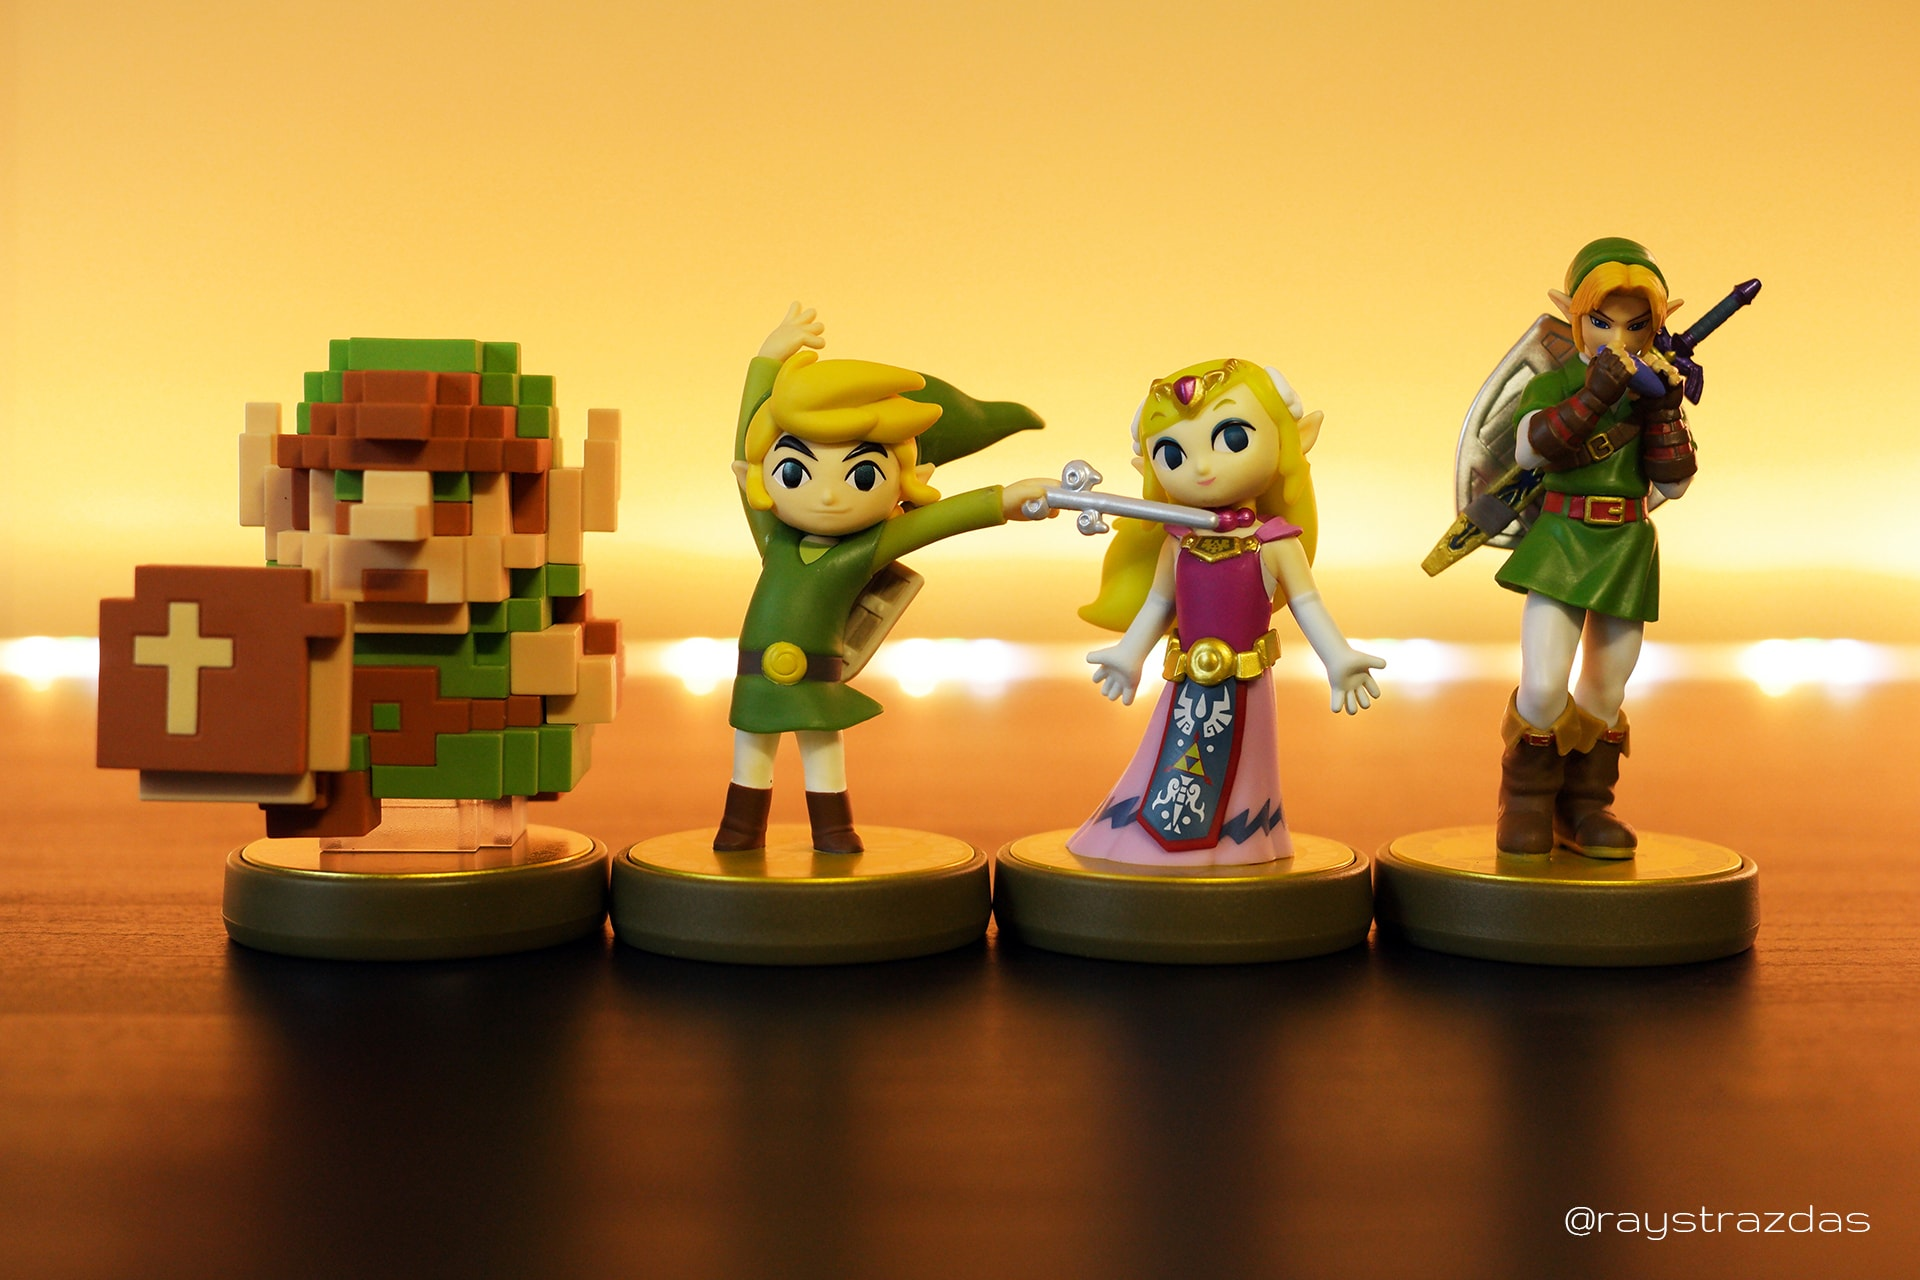 Legend of Zelda 30th Anniversary amiibo Set